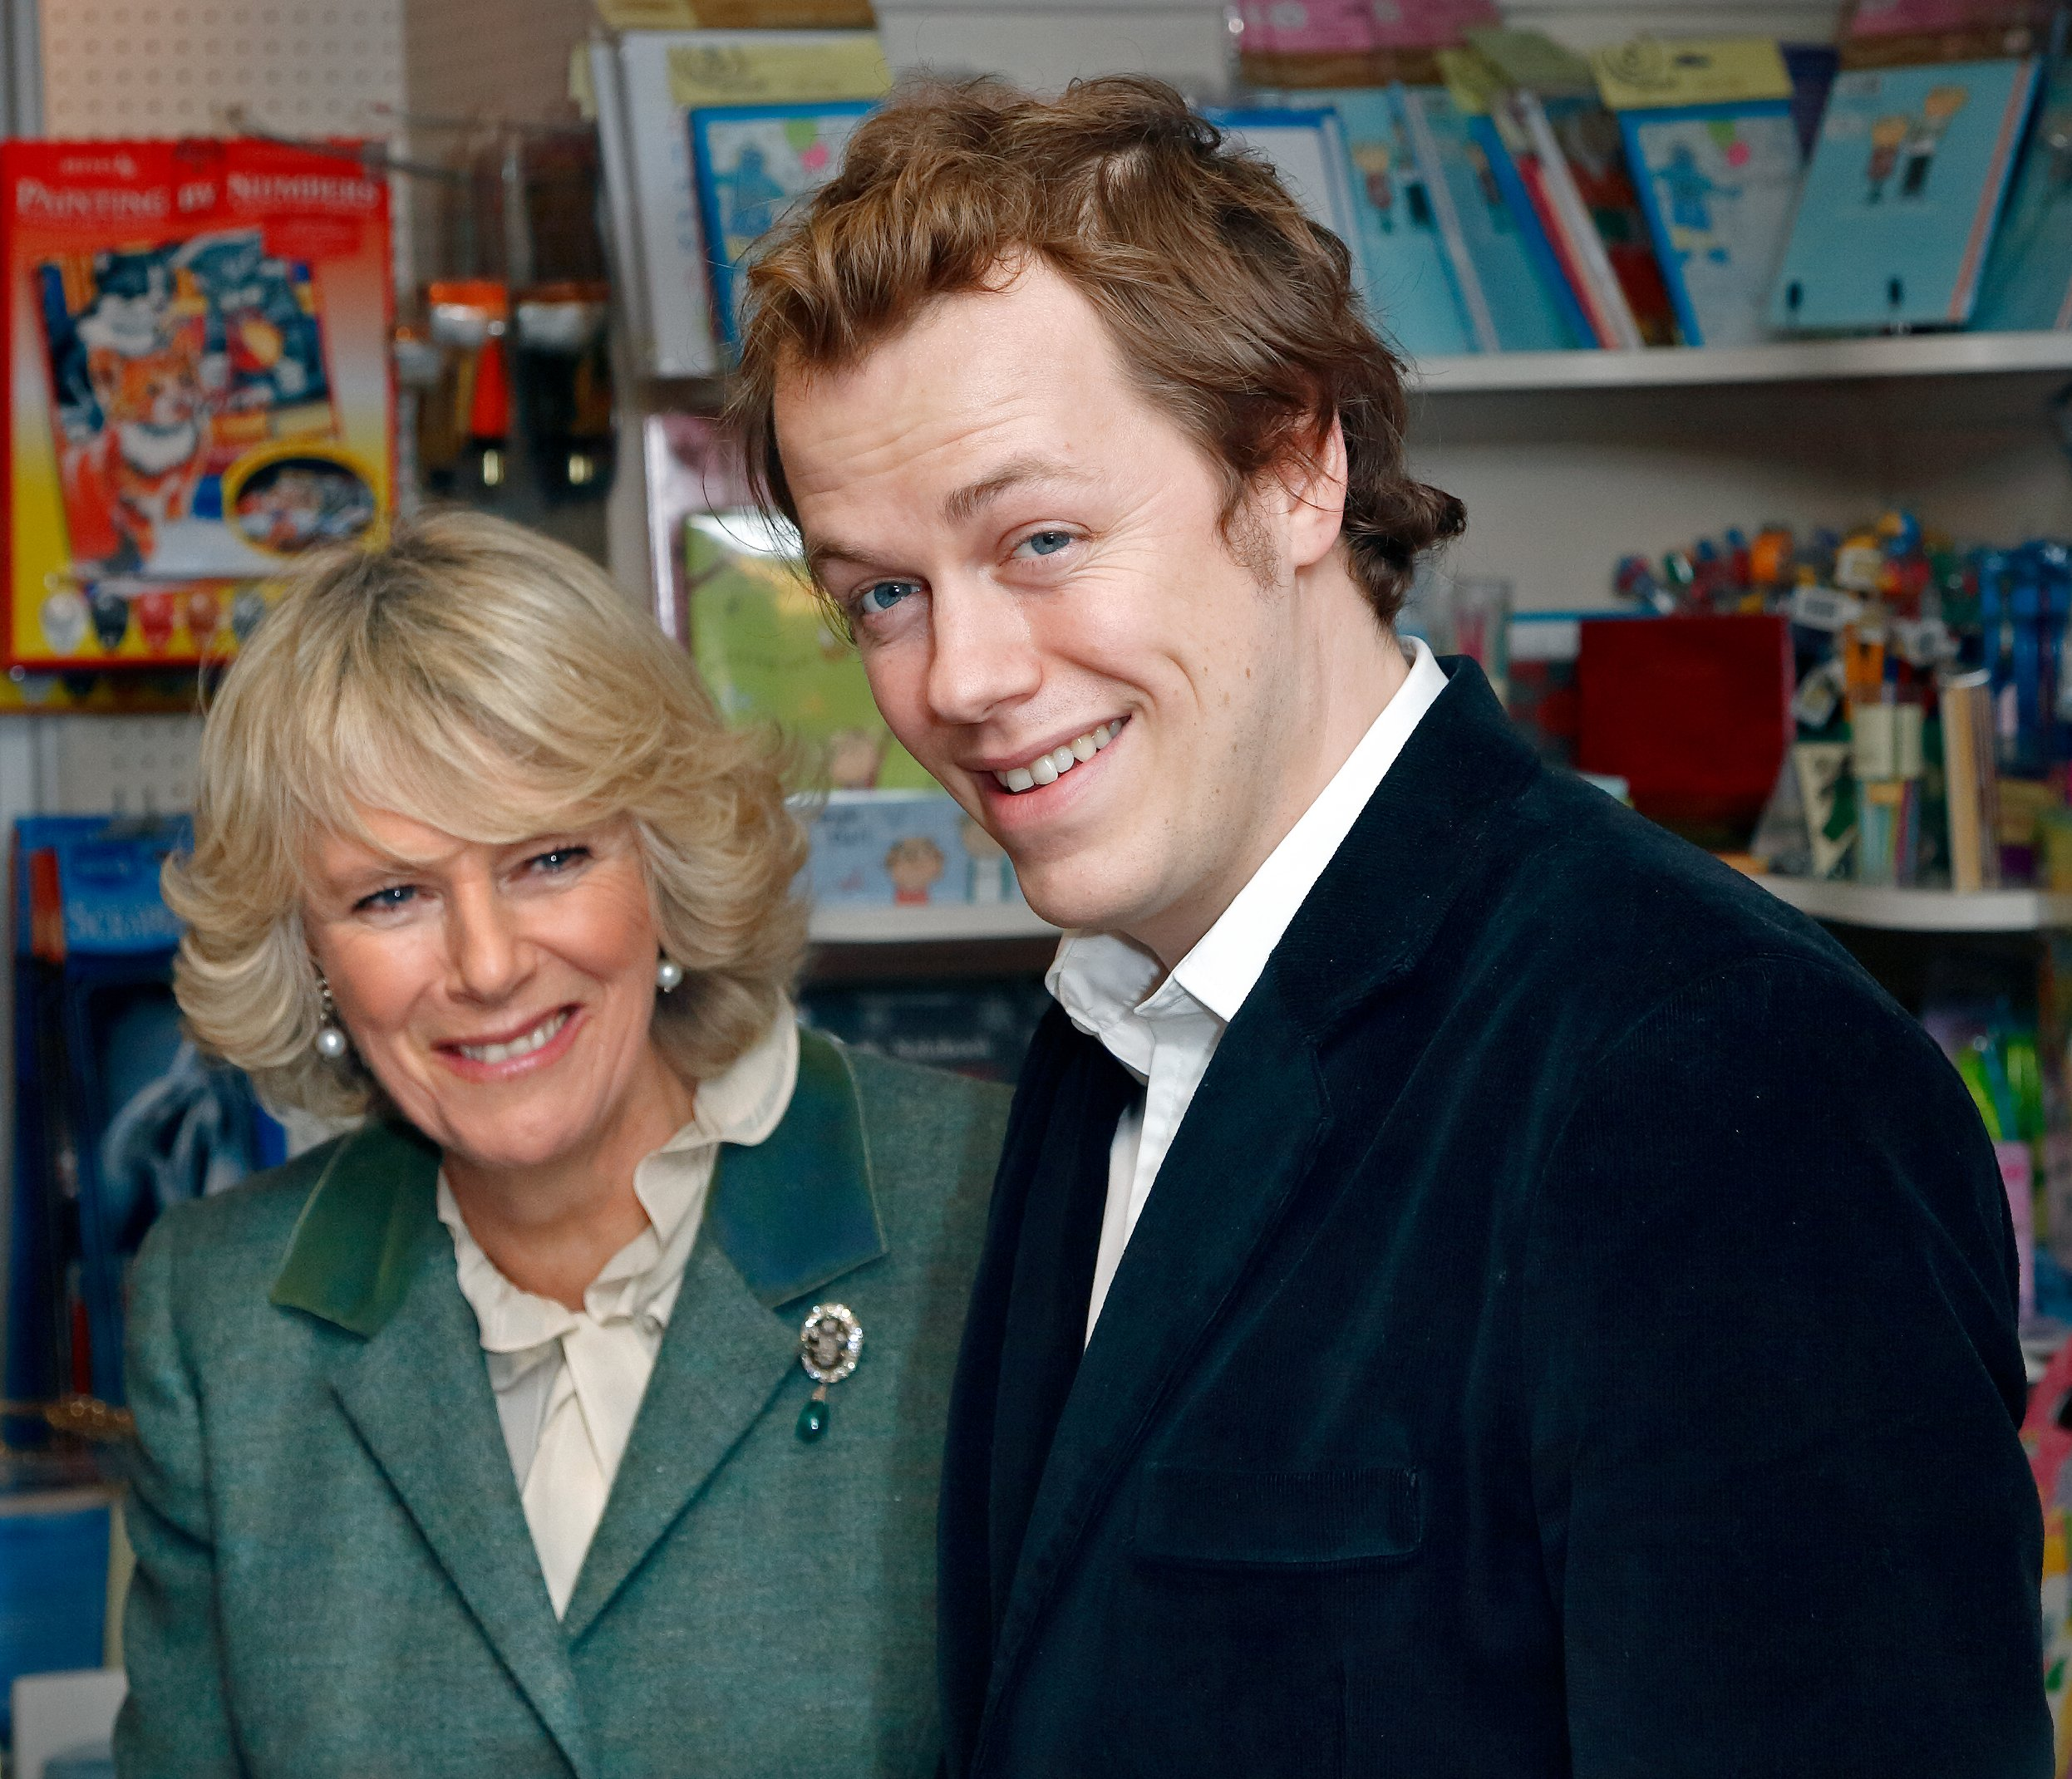 Camilla Parker-Bowles and her son, Tom Parker-Bowles in London on November 2006    Photo: Getty Images